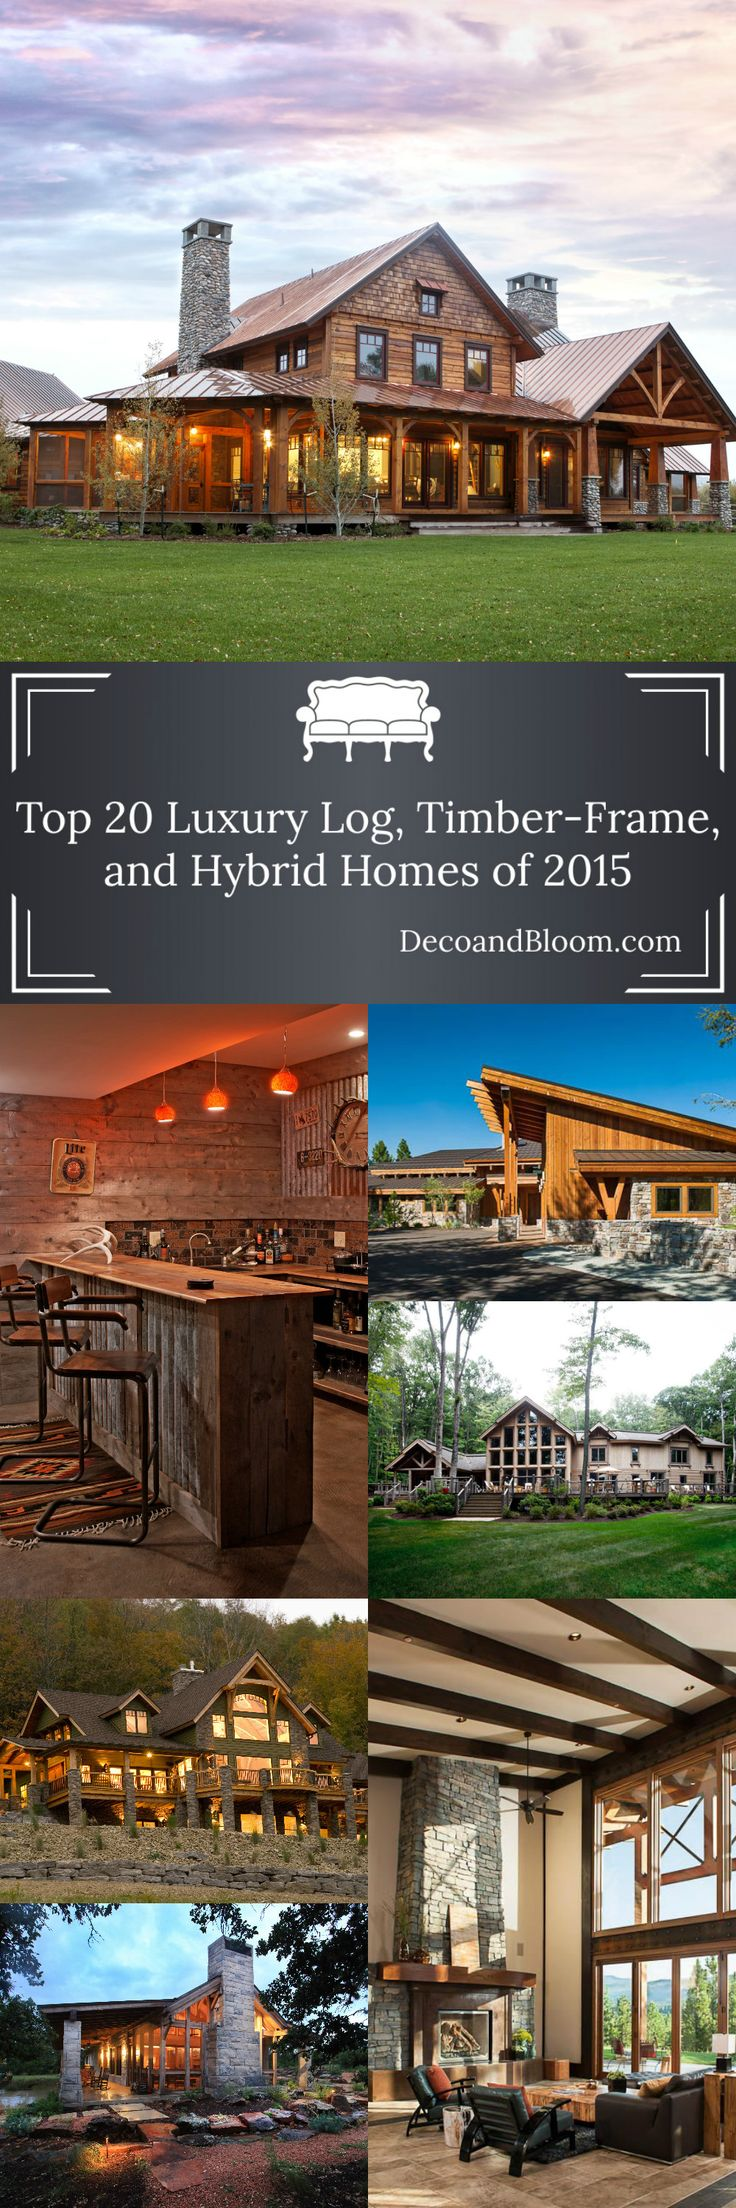 Your home for vacation amp prosperity - Top 20 Luxury Log Timber Frame And Hybrid Homes 2015 From The Home Decor